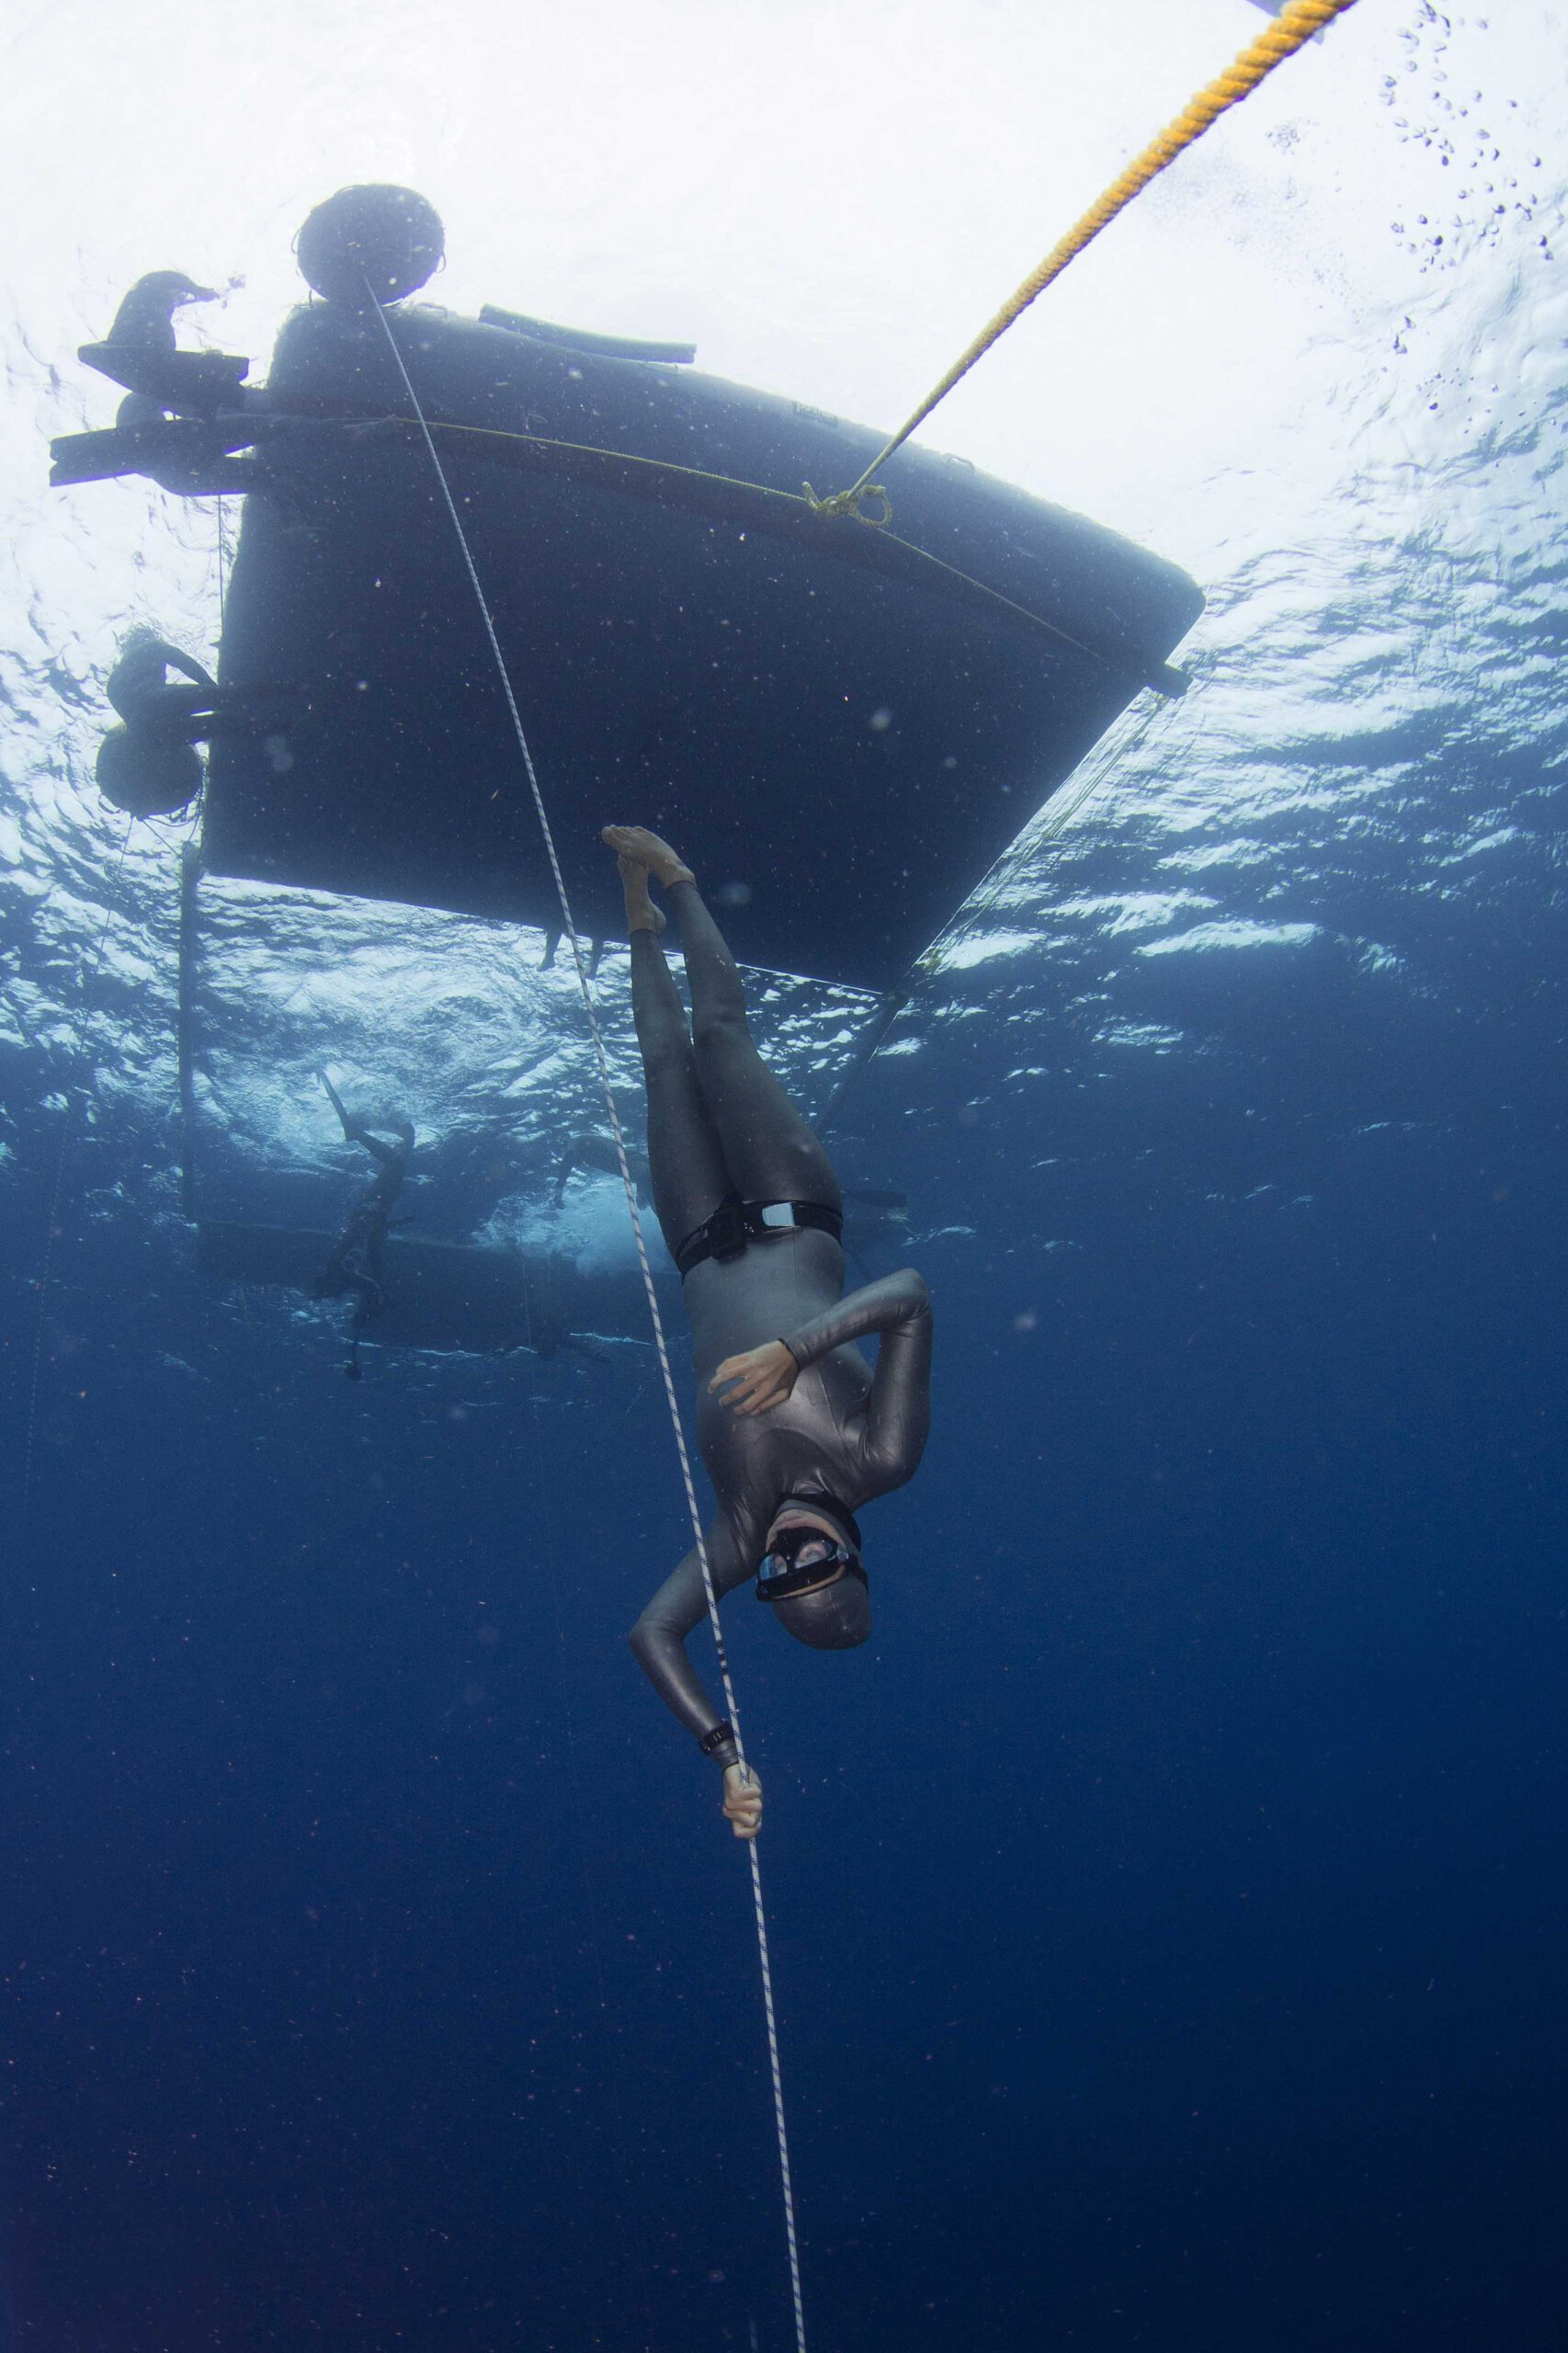 Freediving Bonaire Nature2experience, Carlos Coste, freediving Bonaire, Freediving Bonaire |Nature2experience